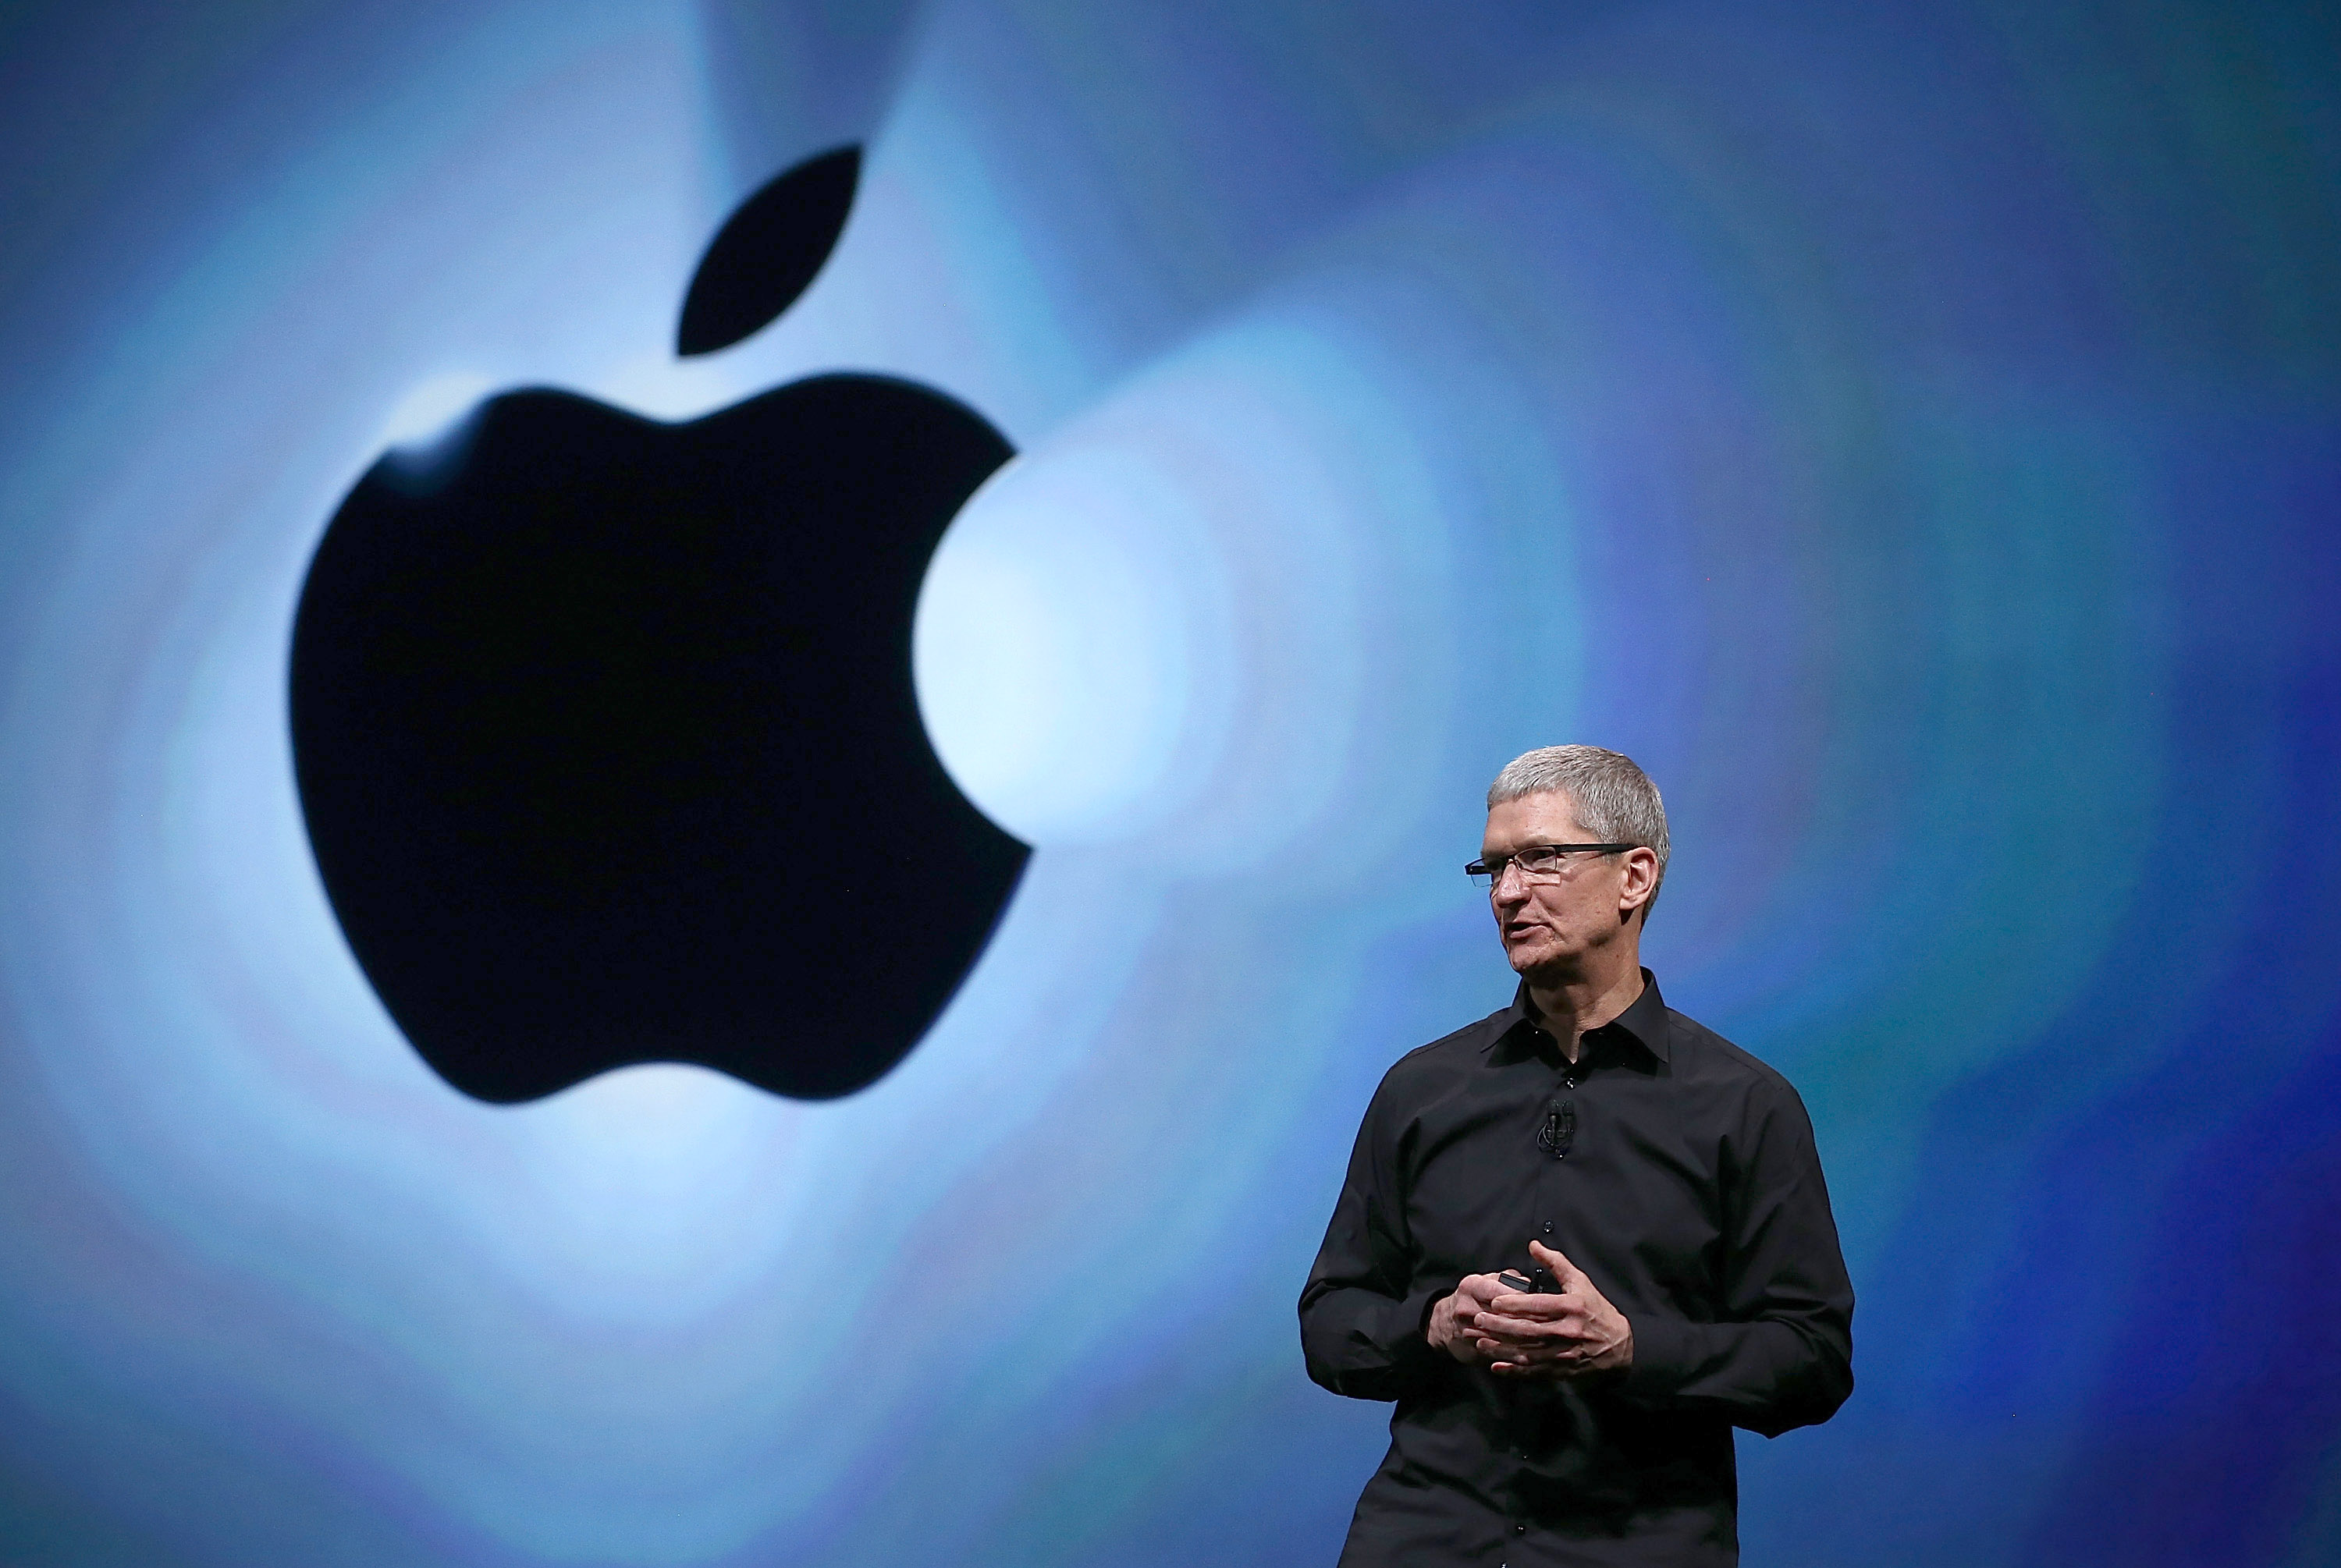 Apple CEO Tim Cook speaks during an Apple special event at the Yerba Buena Center for the Arts on September 12, 2012 in San Francisco, California.